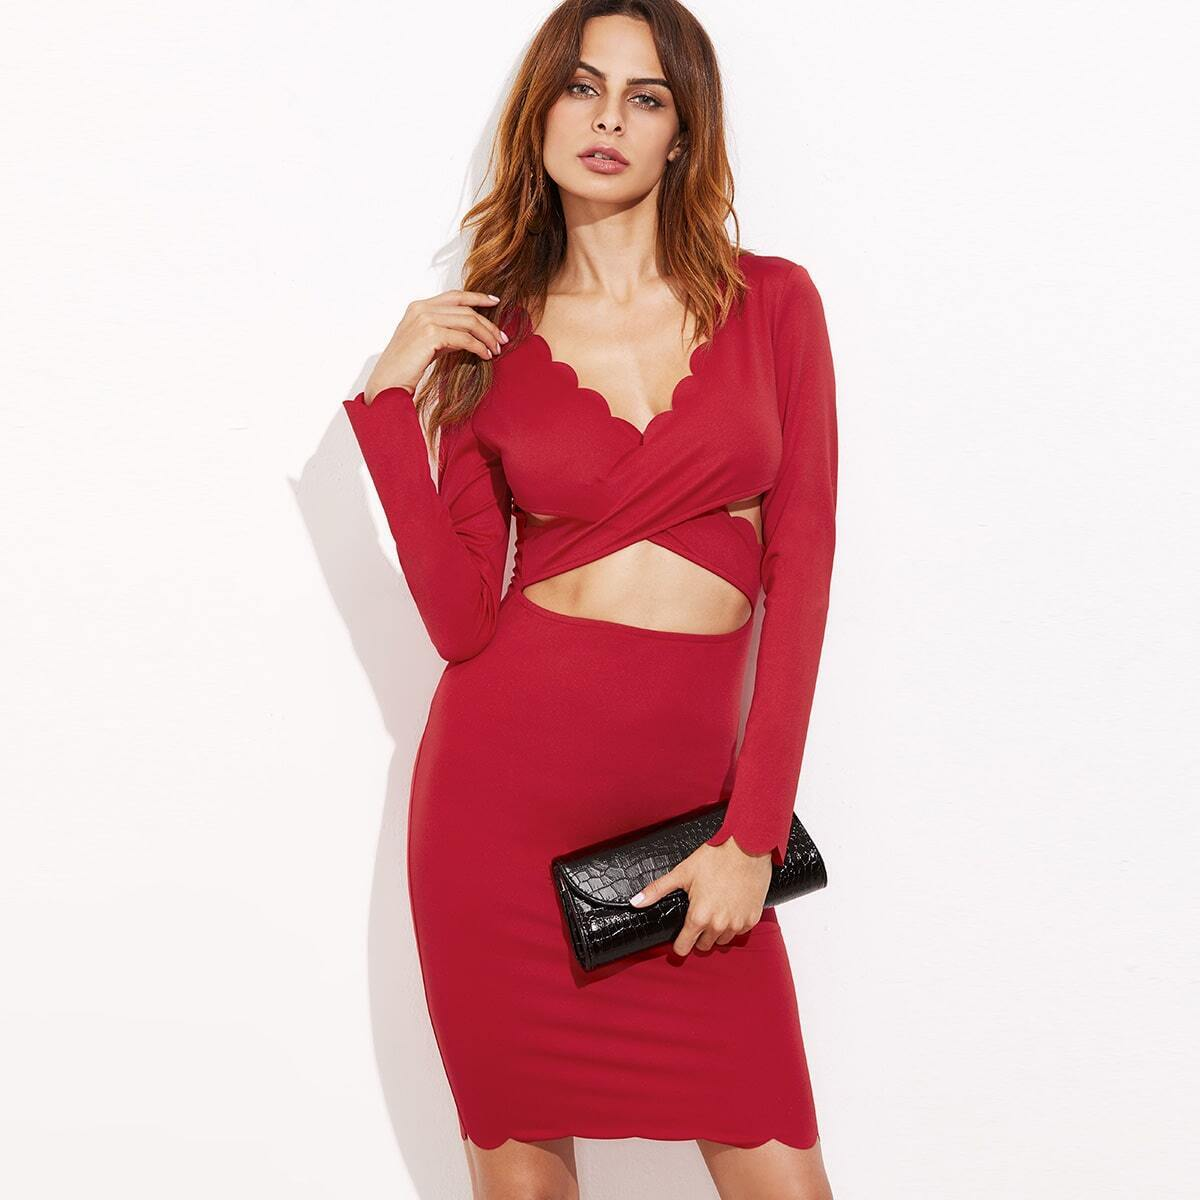 Crossover Peekaboo Scalloped Bodycon Dress